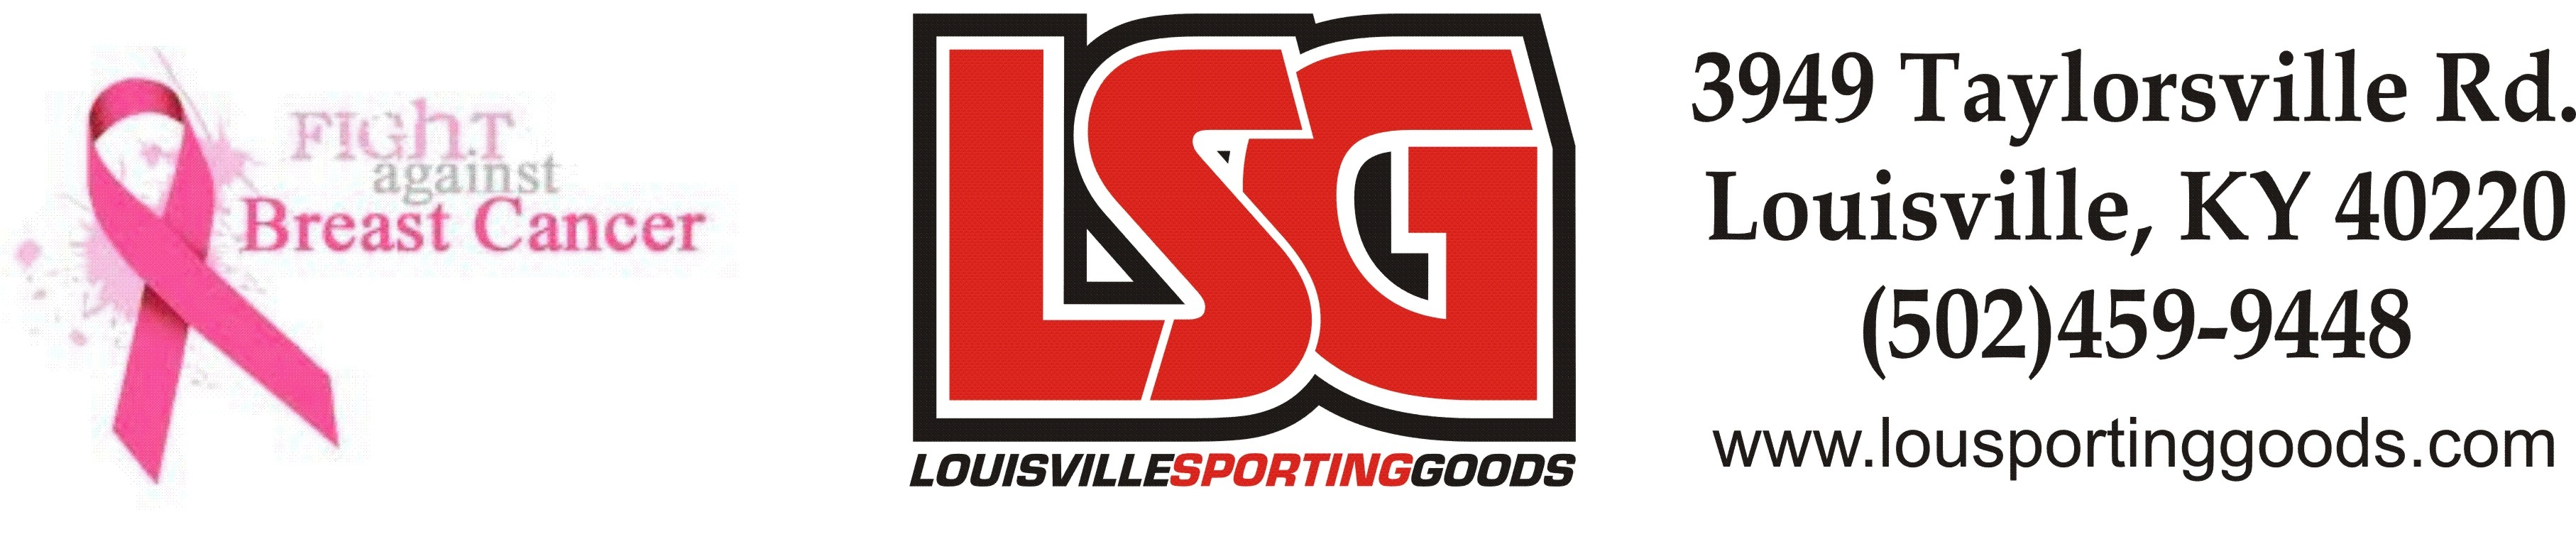 Louisville Sporting Goods